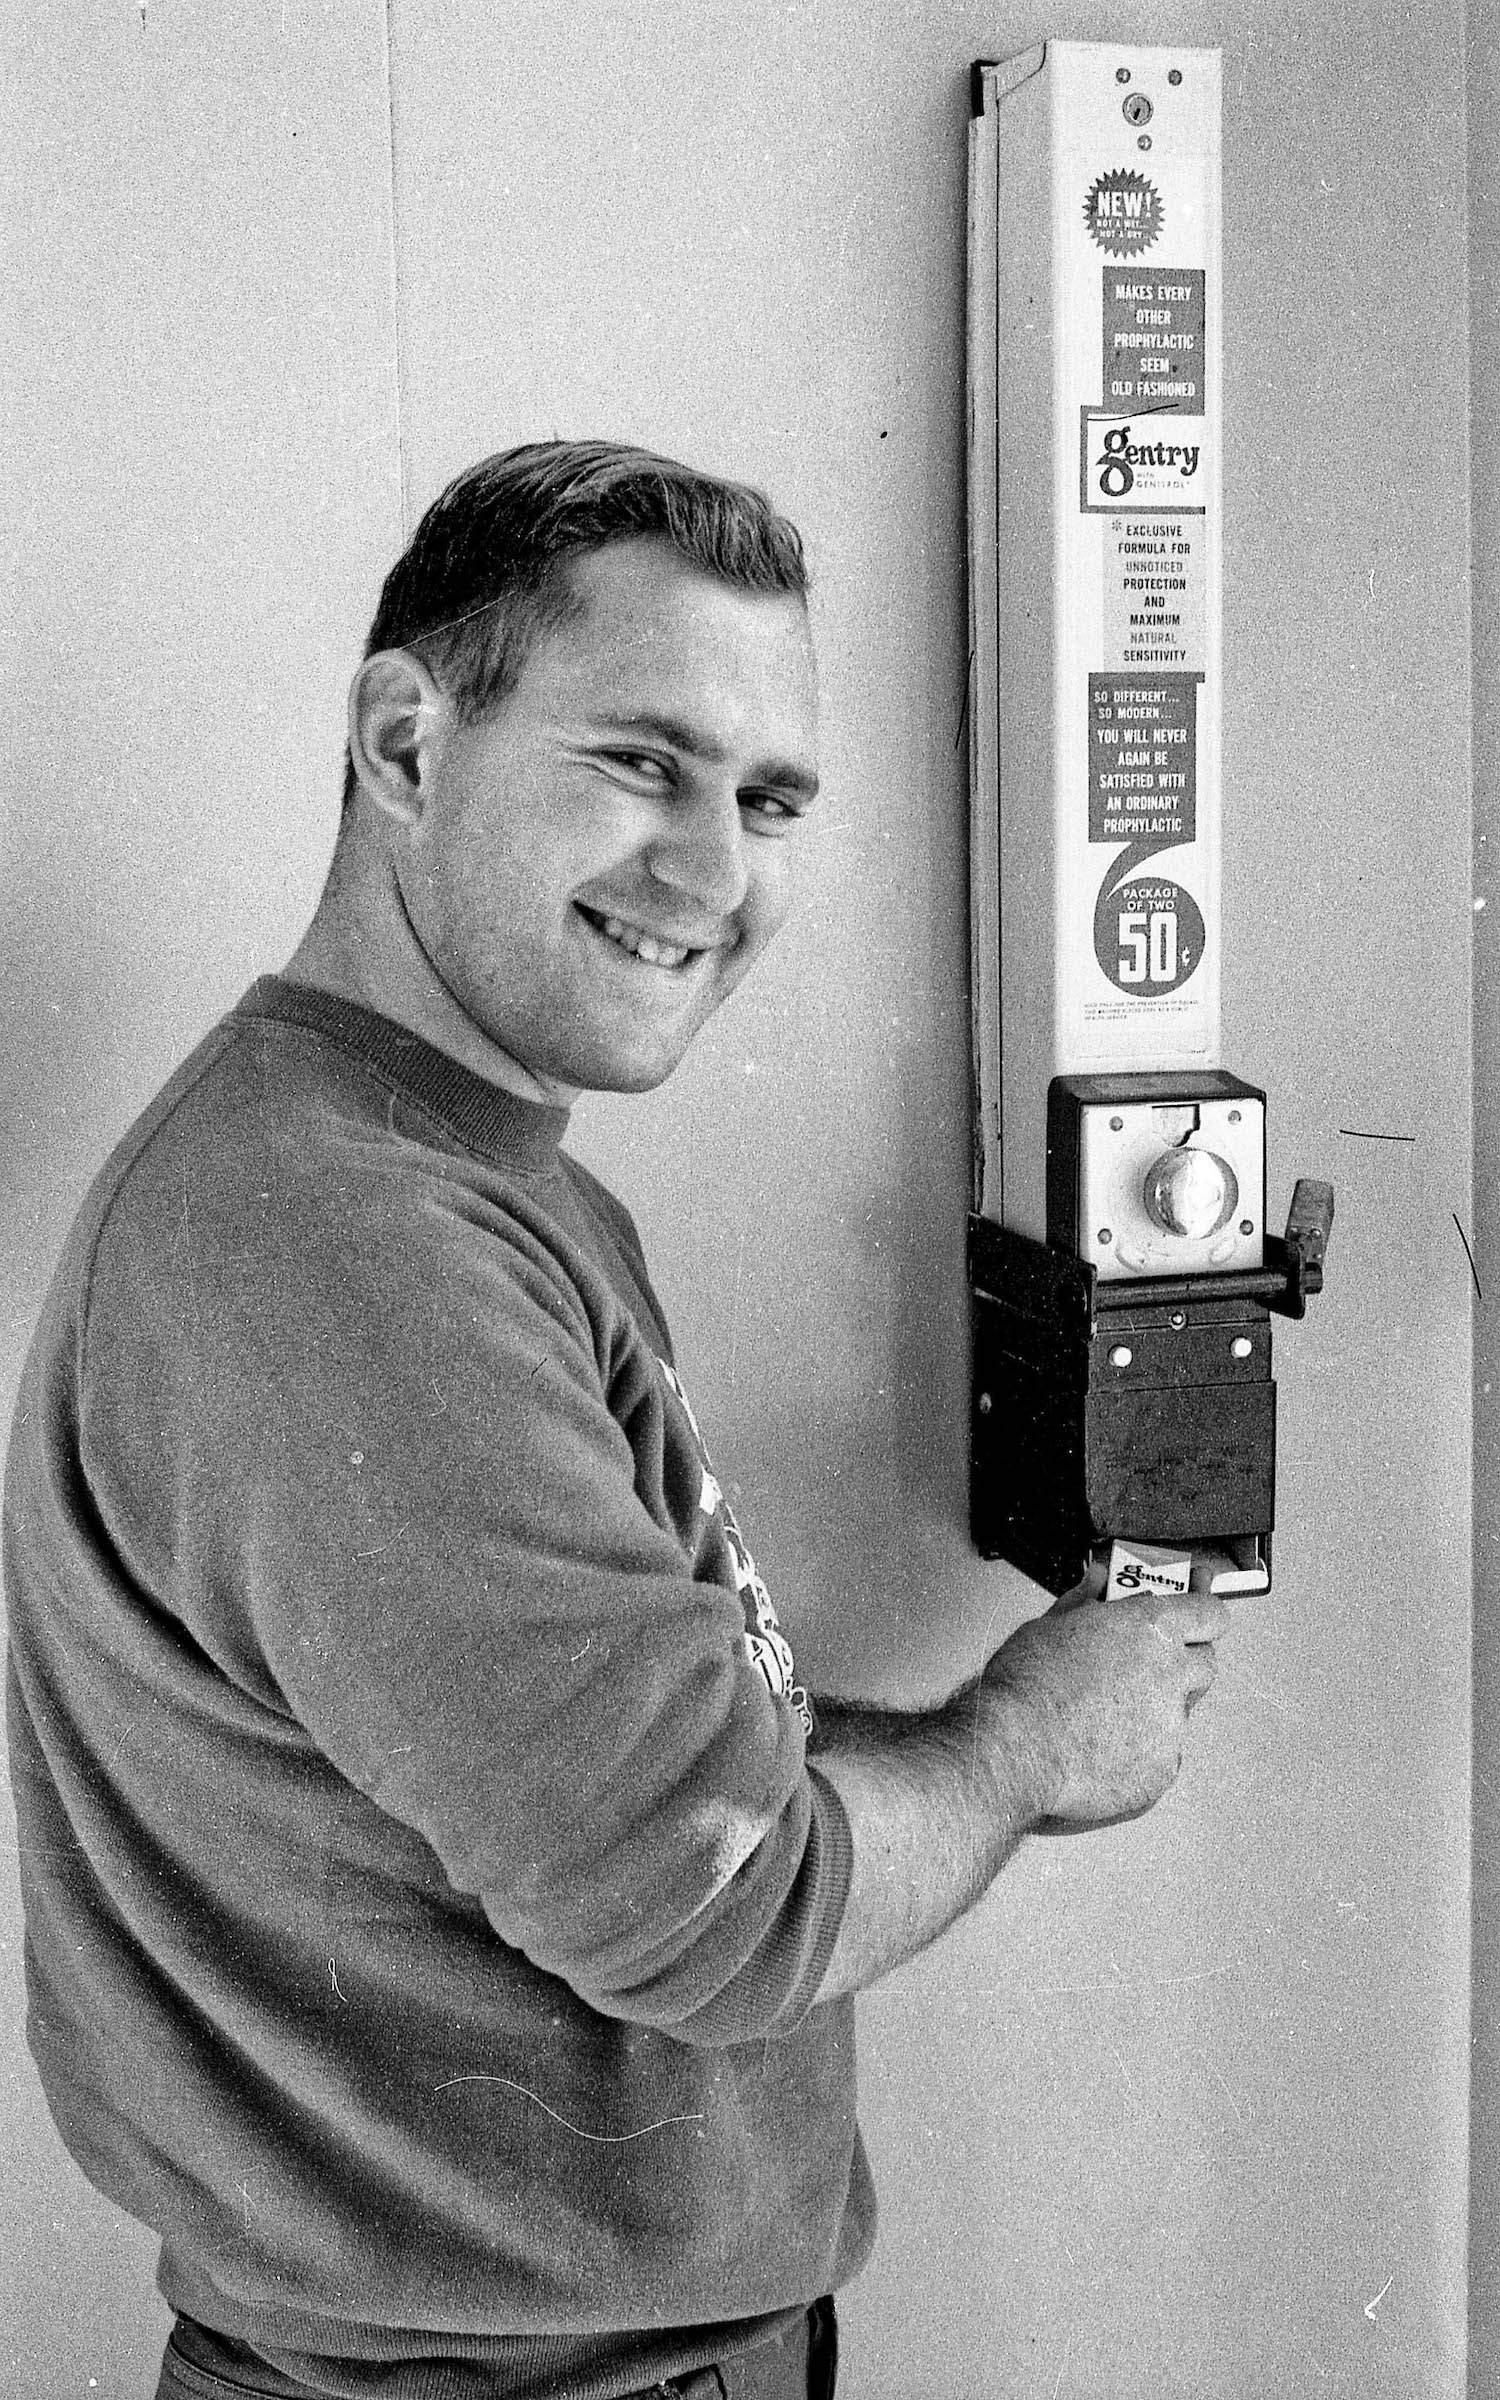 Herb and condom dispenser circa 1964